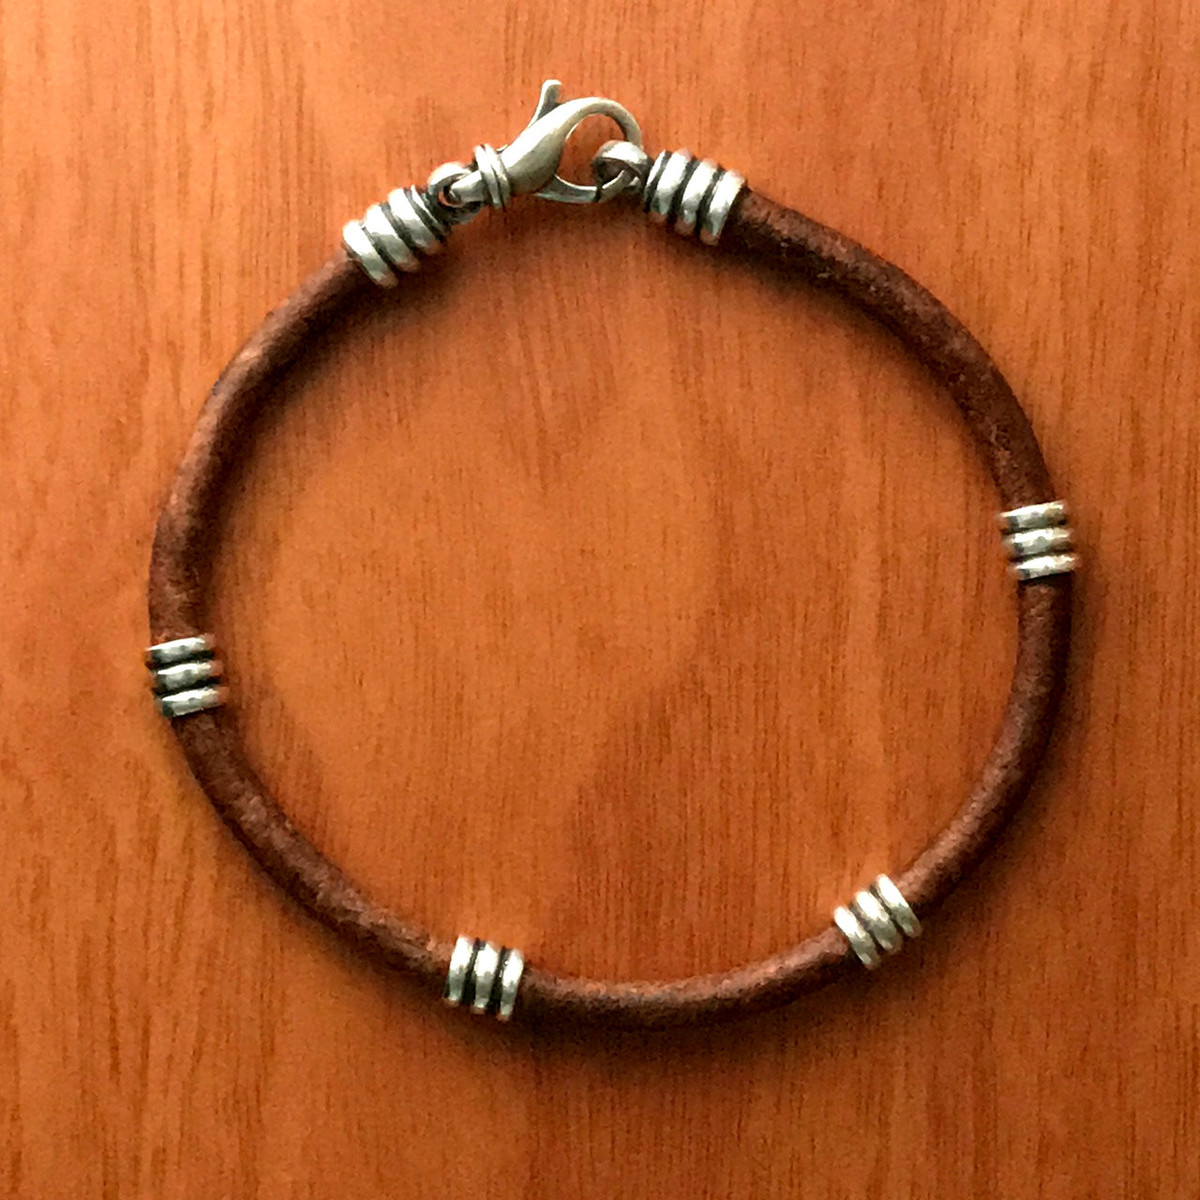 Lovely Natural Leather and Sterling Silver Bracelet by Bowman Originals JI81